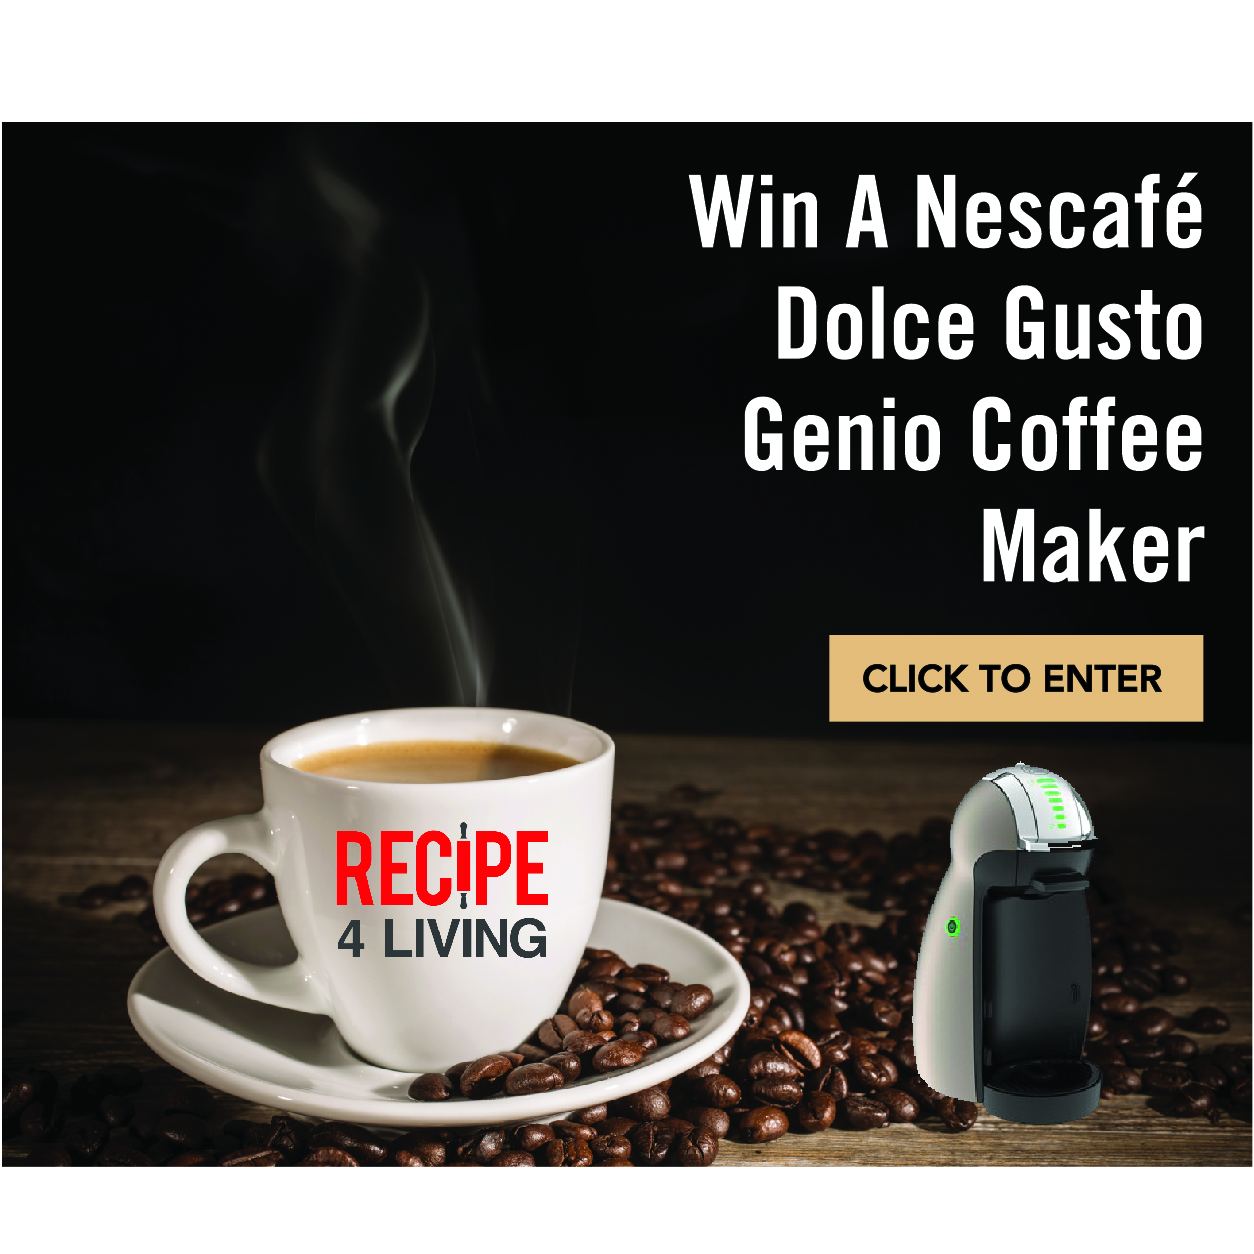 Nescafe Coffee Maker Giveaway